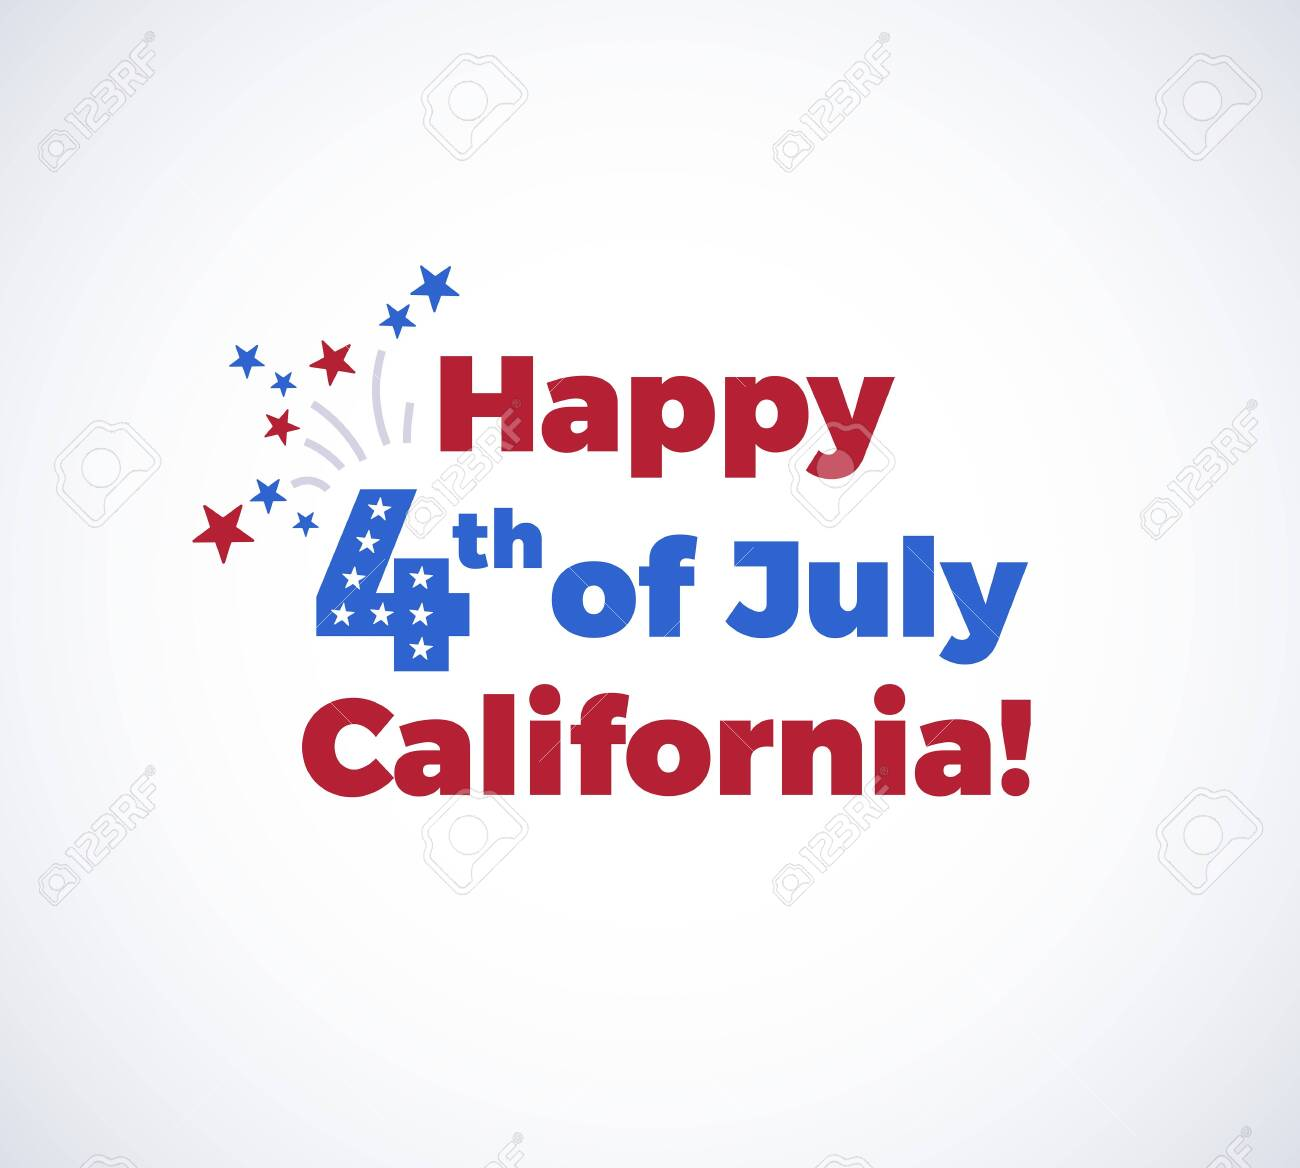 Happy 4th of July California background with the US Independence Day congratulations, fireworks, and flying stars. illustration isolated on white background - 147504766